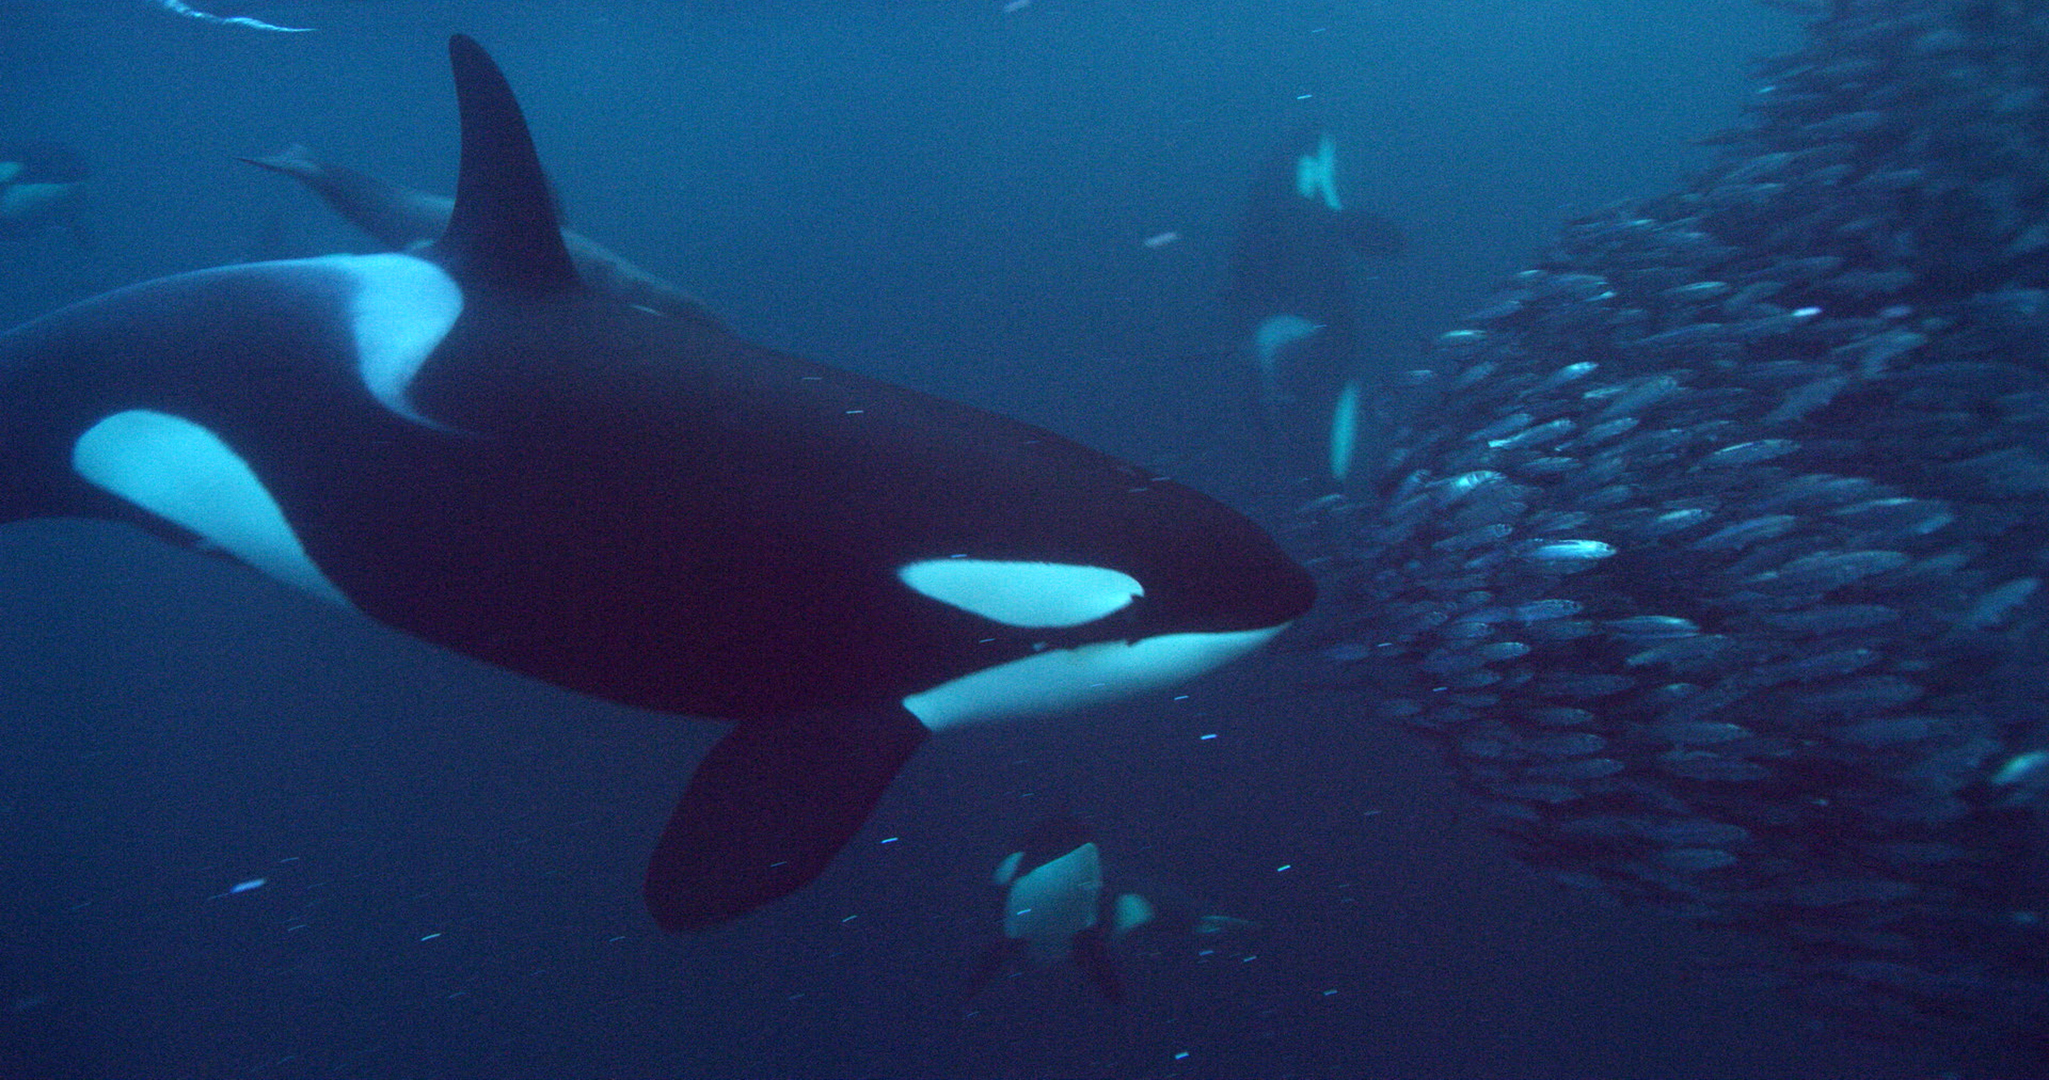 an orca in the ocean swimming towards a school of fish on the right